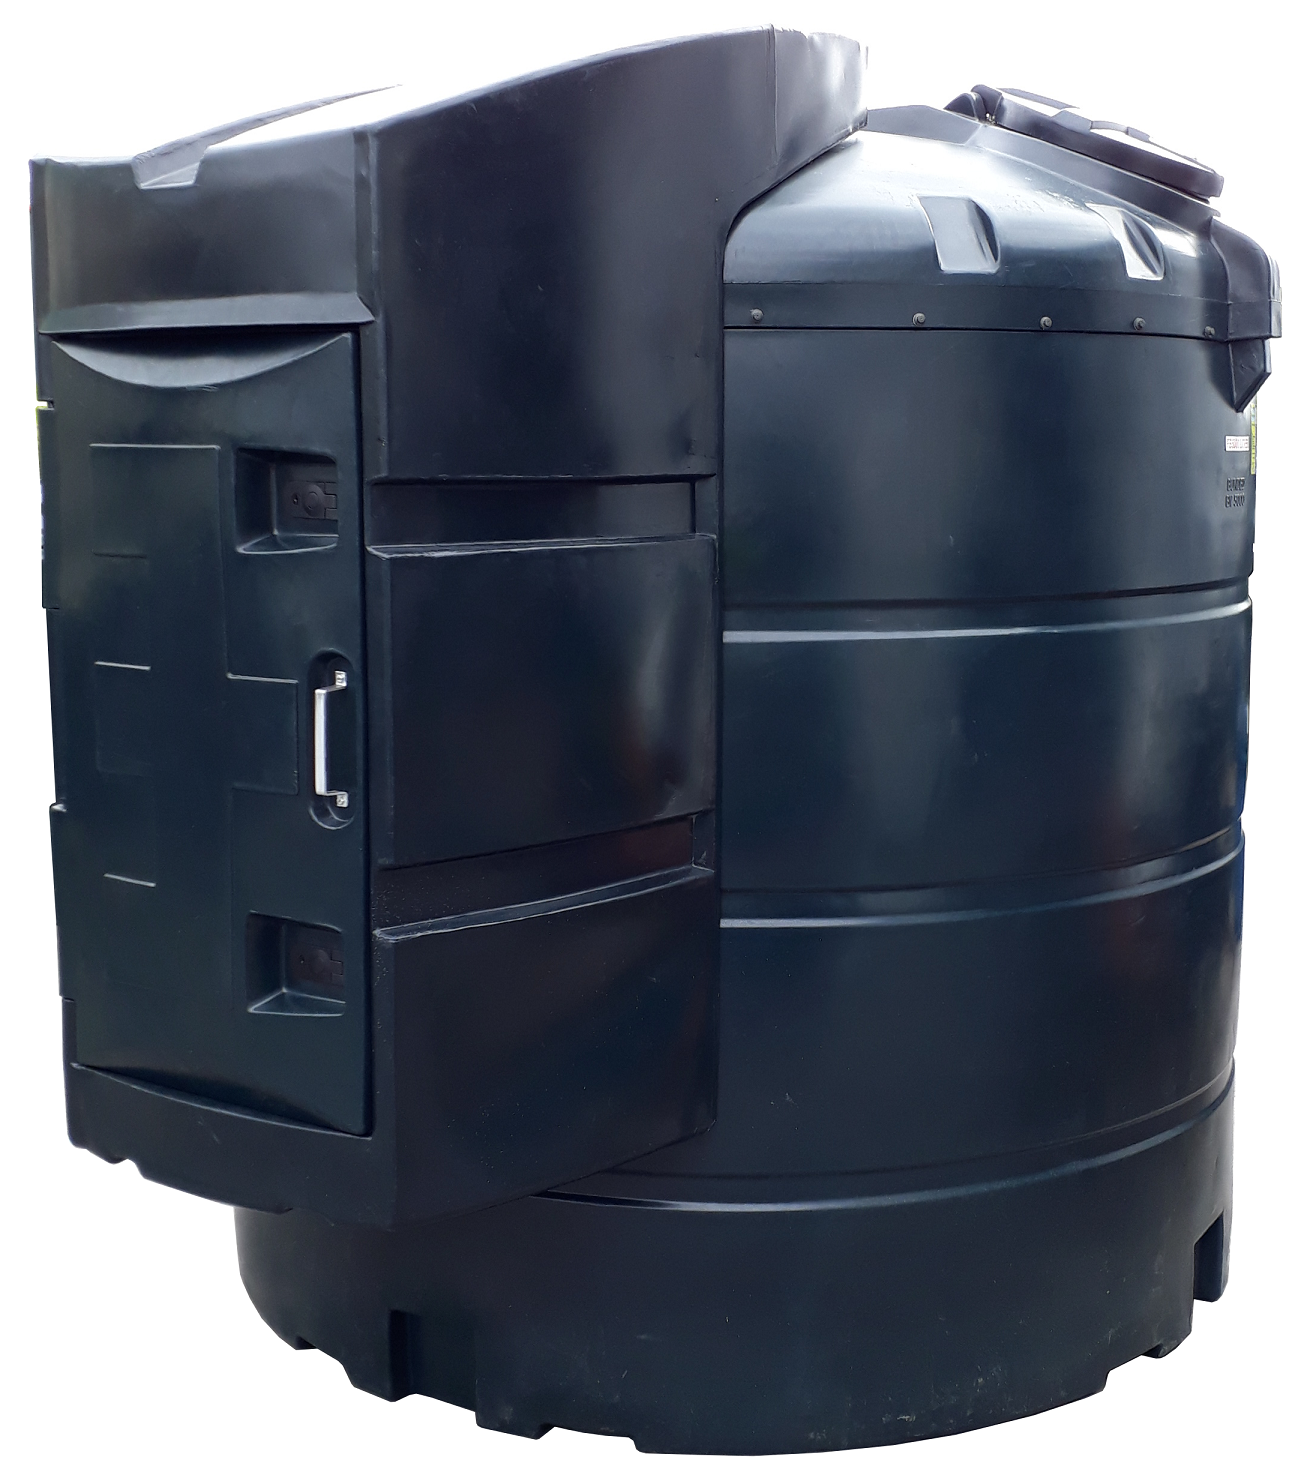 5000 Litre Fuel Bank Image